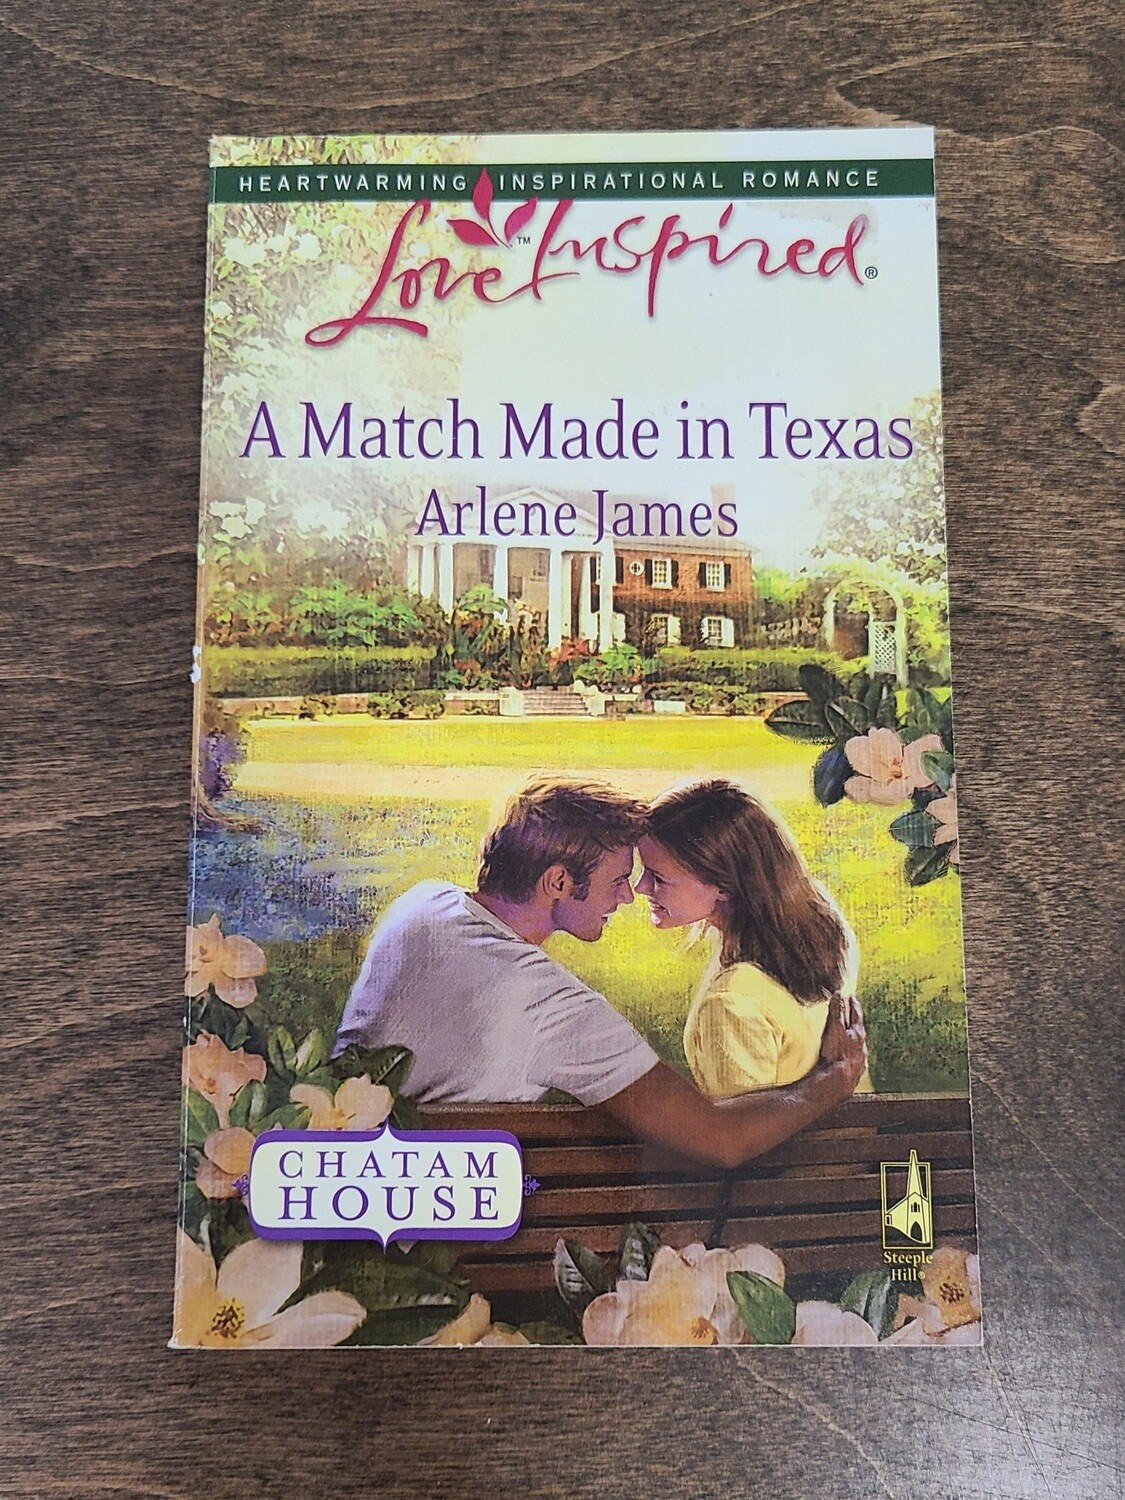 A Match Made in Texas by Arlene James